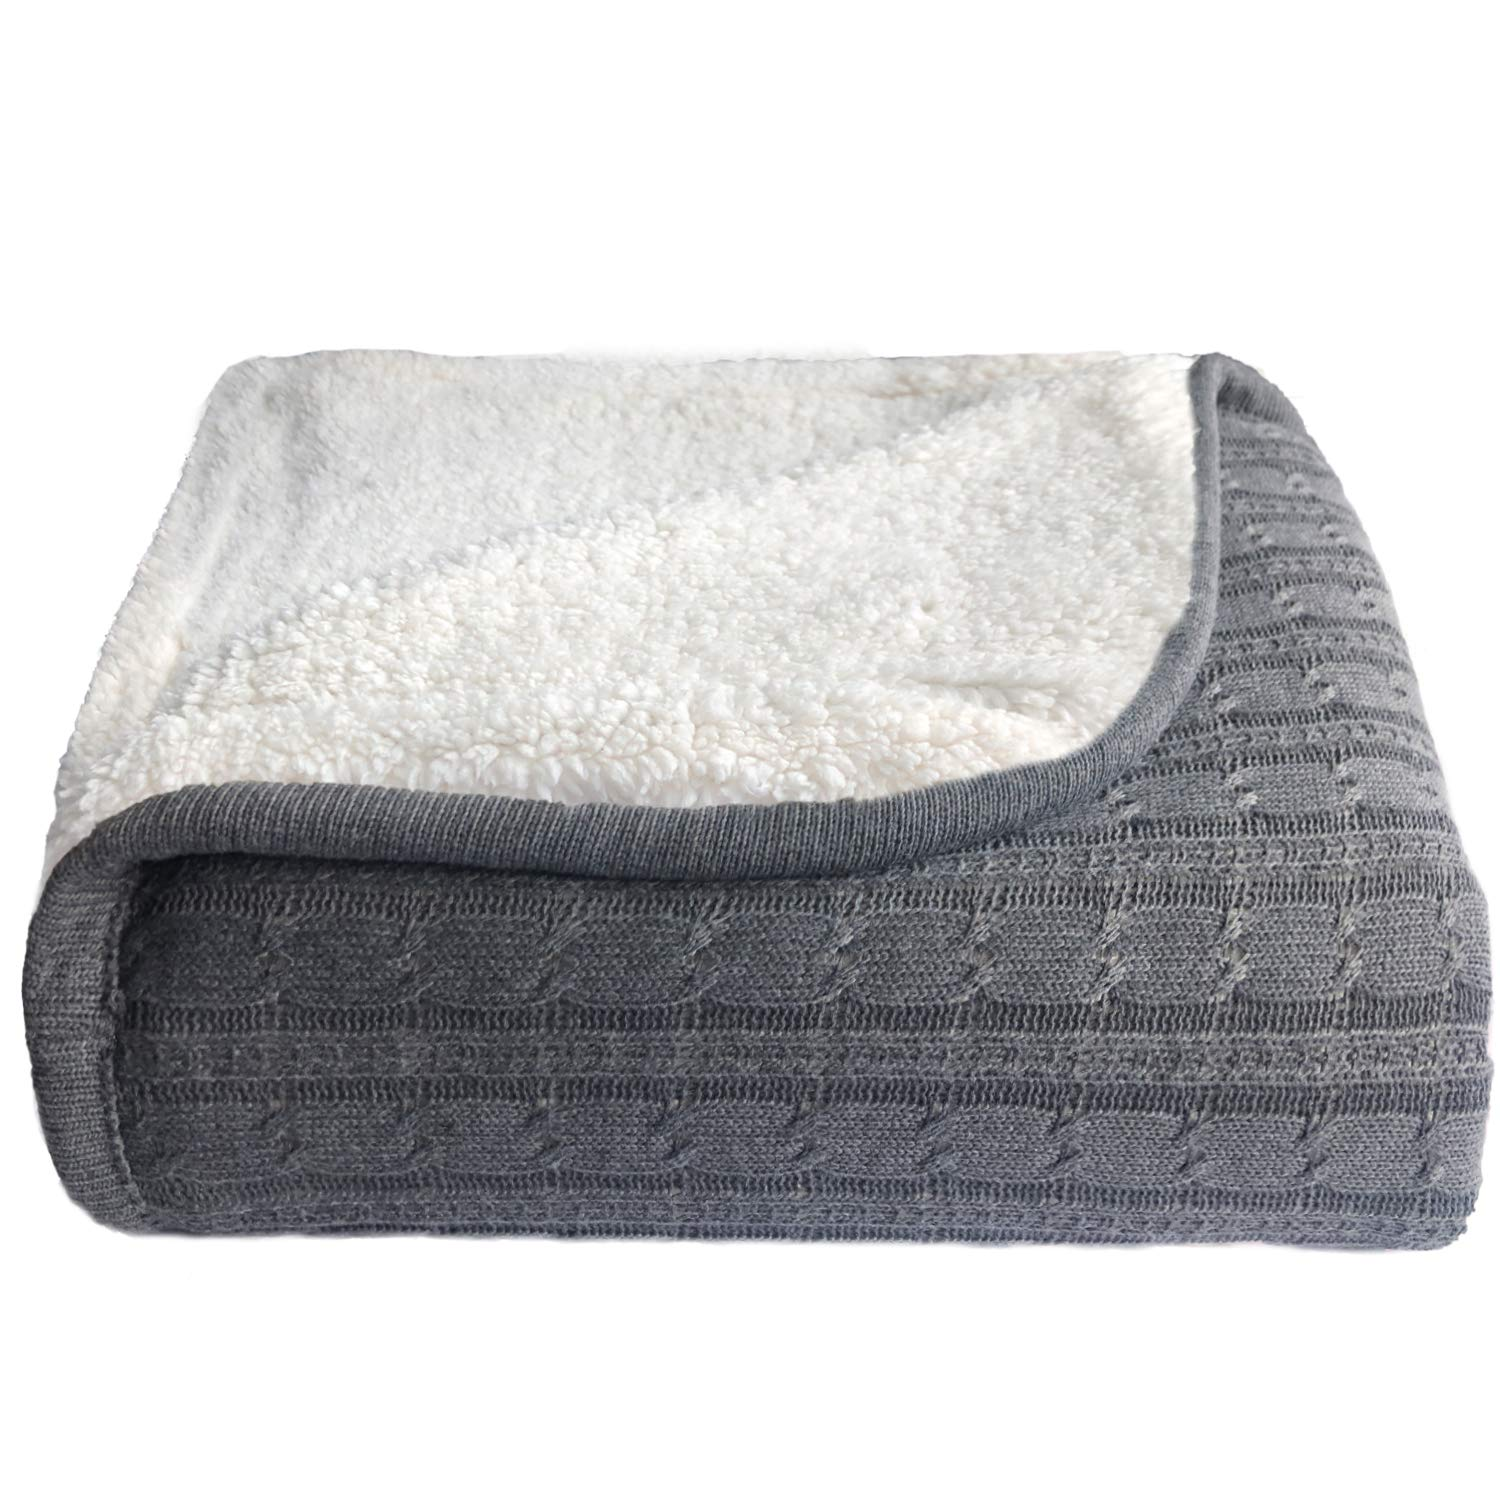 NEWCOSPLAY Cable Knit Sherpa Throw Reversible Warm Cozy Sweater Blanket for Bed Couch All Season Use (Knit-Grey, Throw)